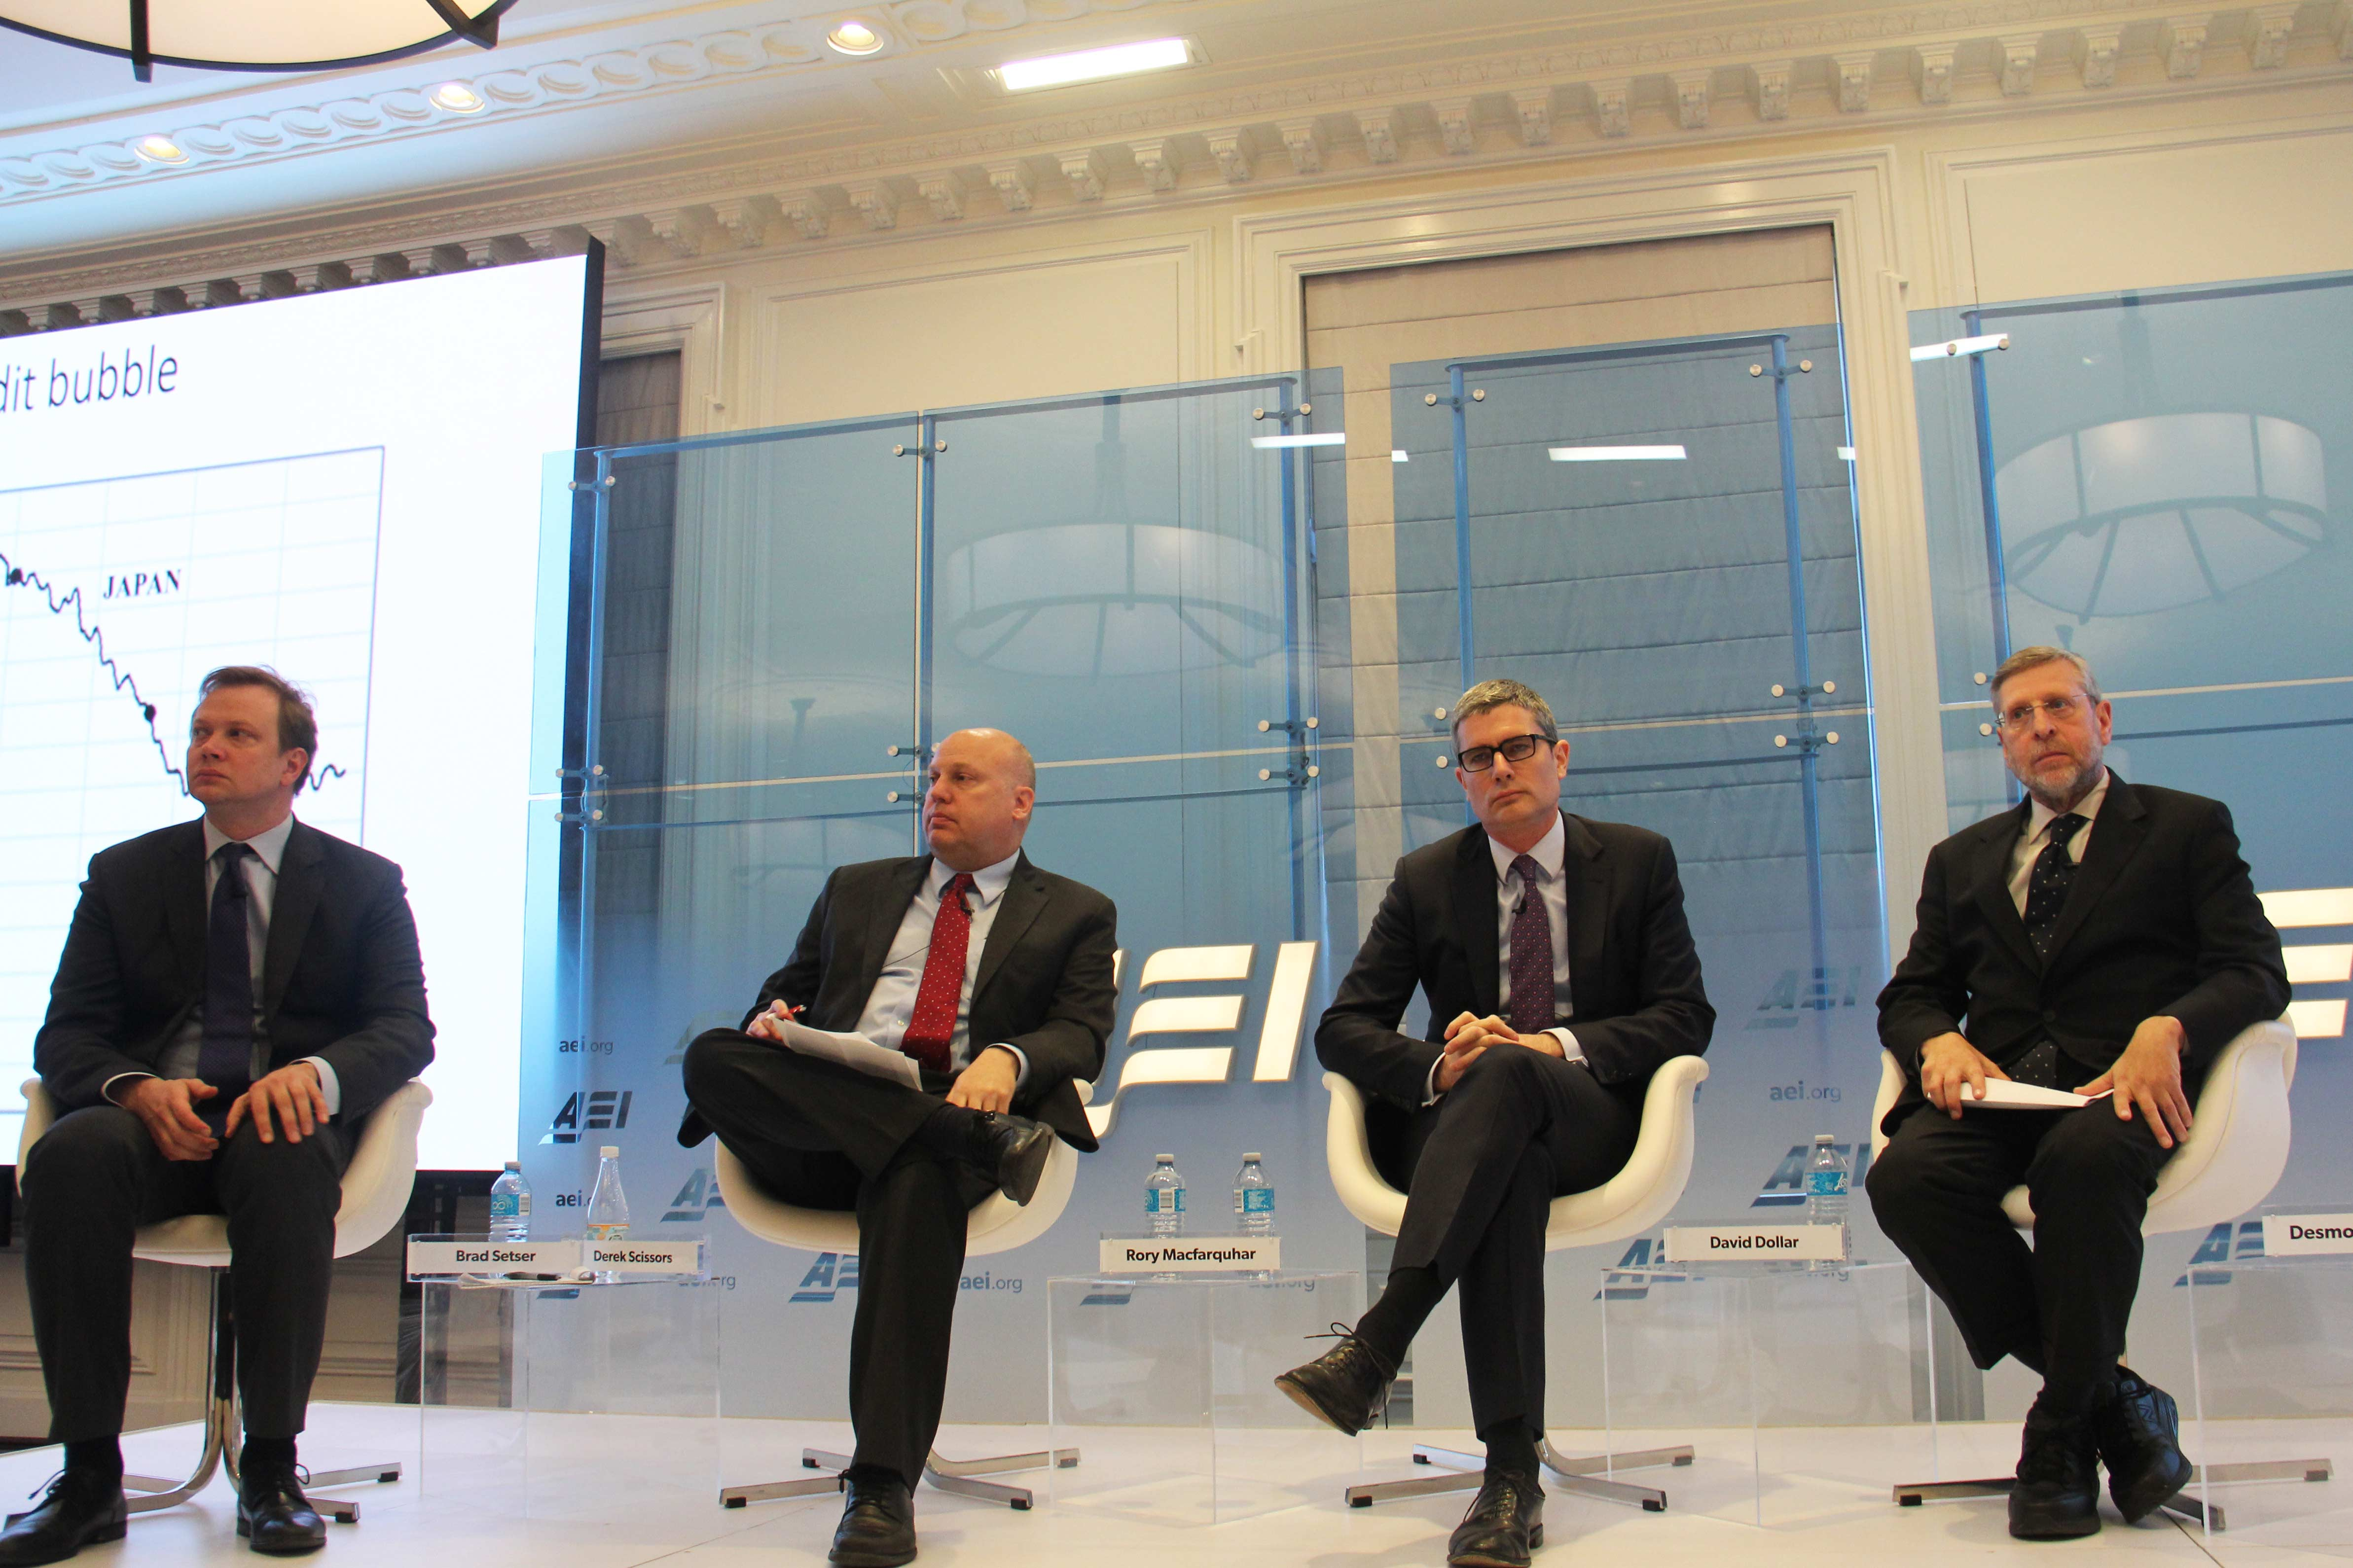 Economic experts, David Dollar, Rory Macfarquhar, Derek Scissors and Brad Setser (right to left), discuss the Trump administration's Chinese economic challenge at the American Enterprise Institute on Thursday.